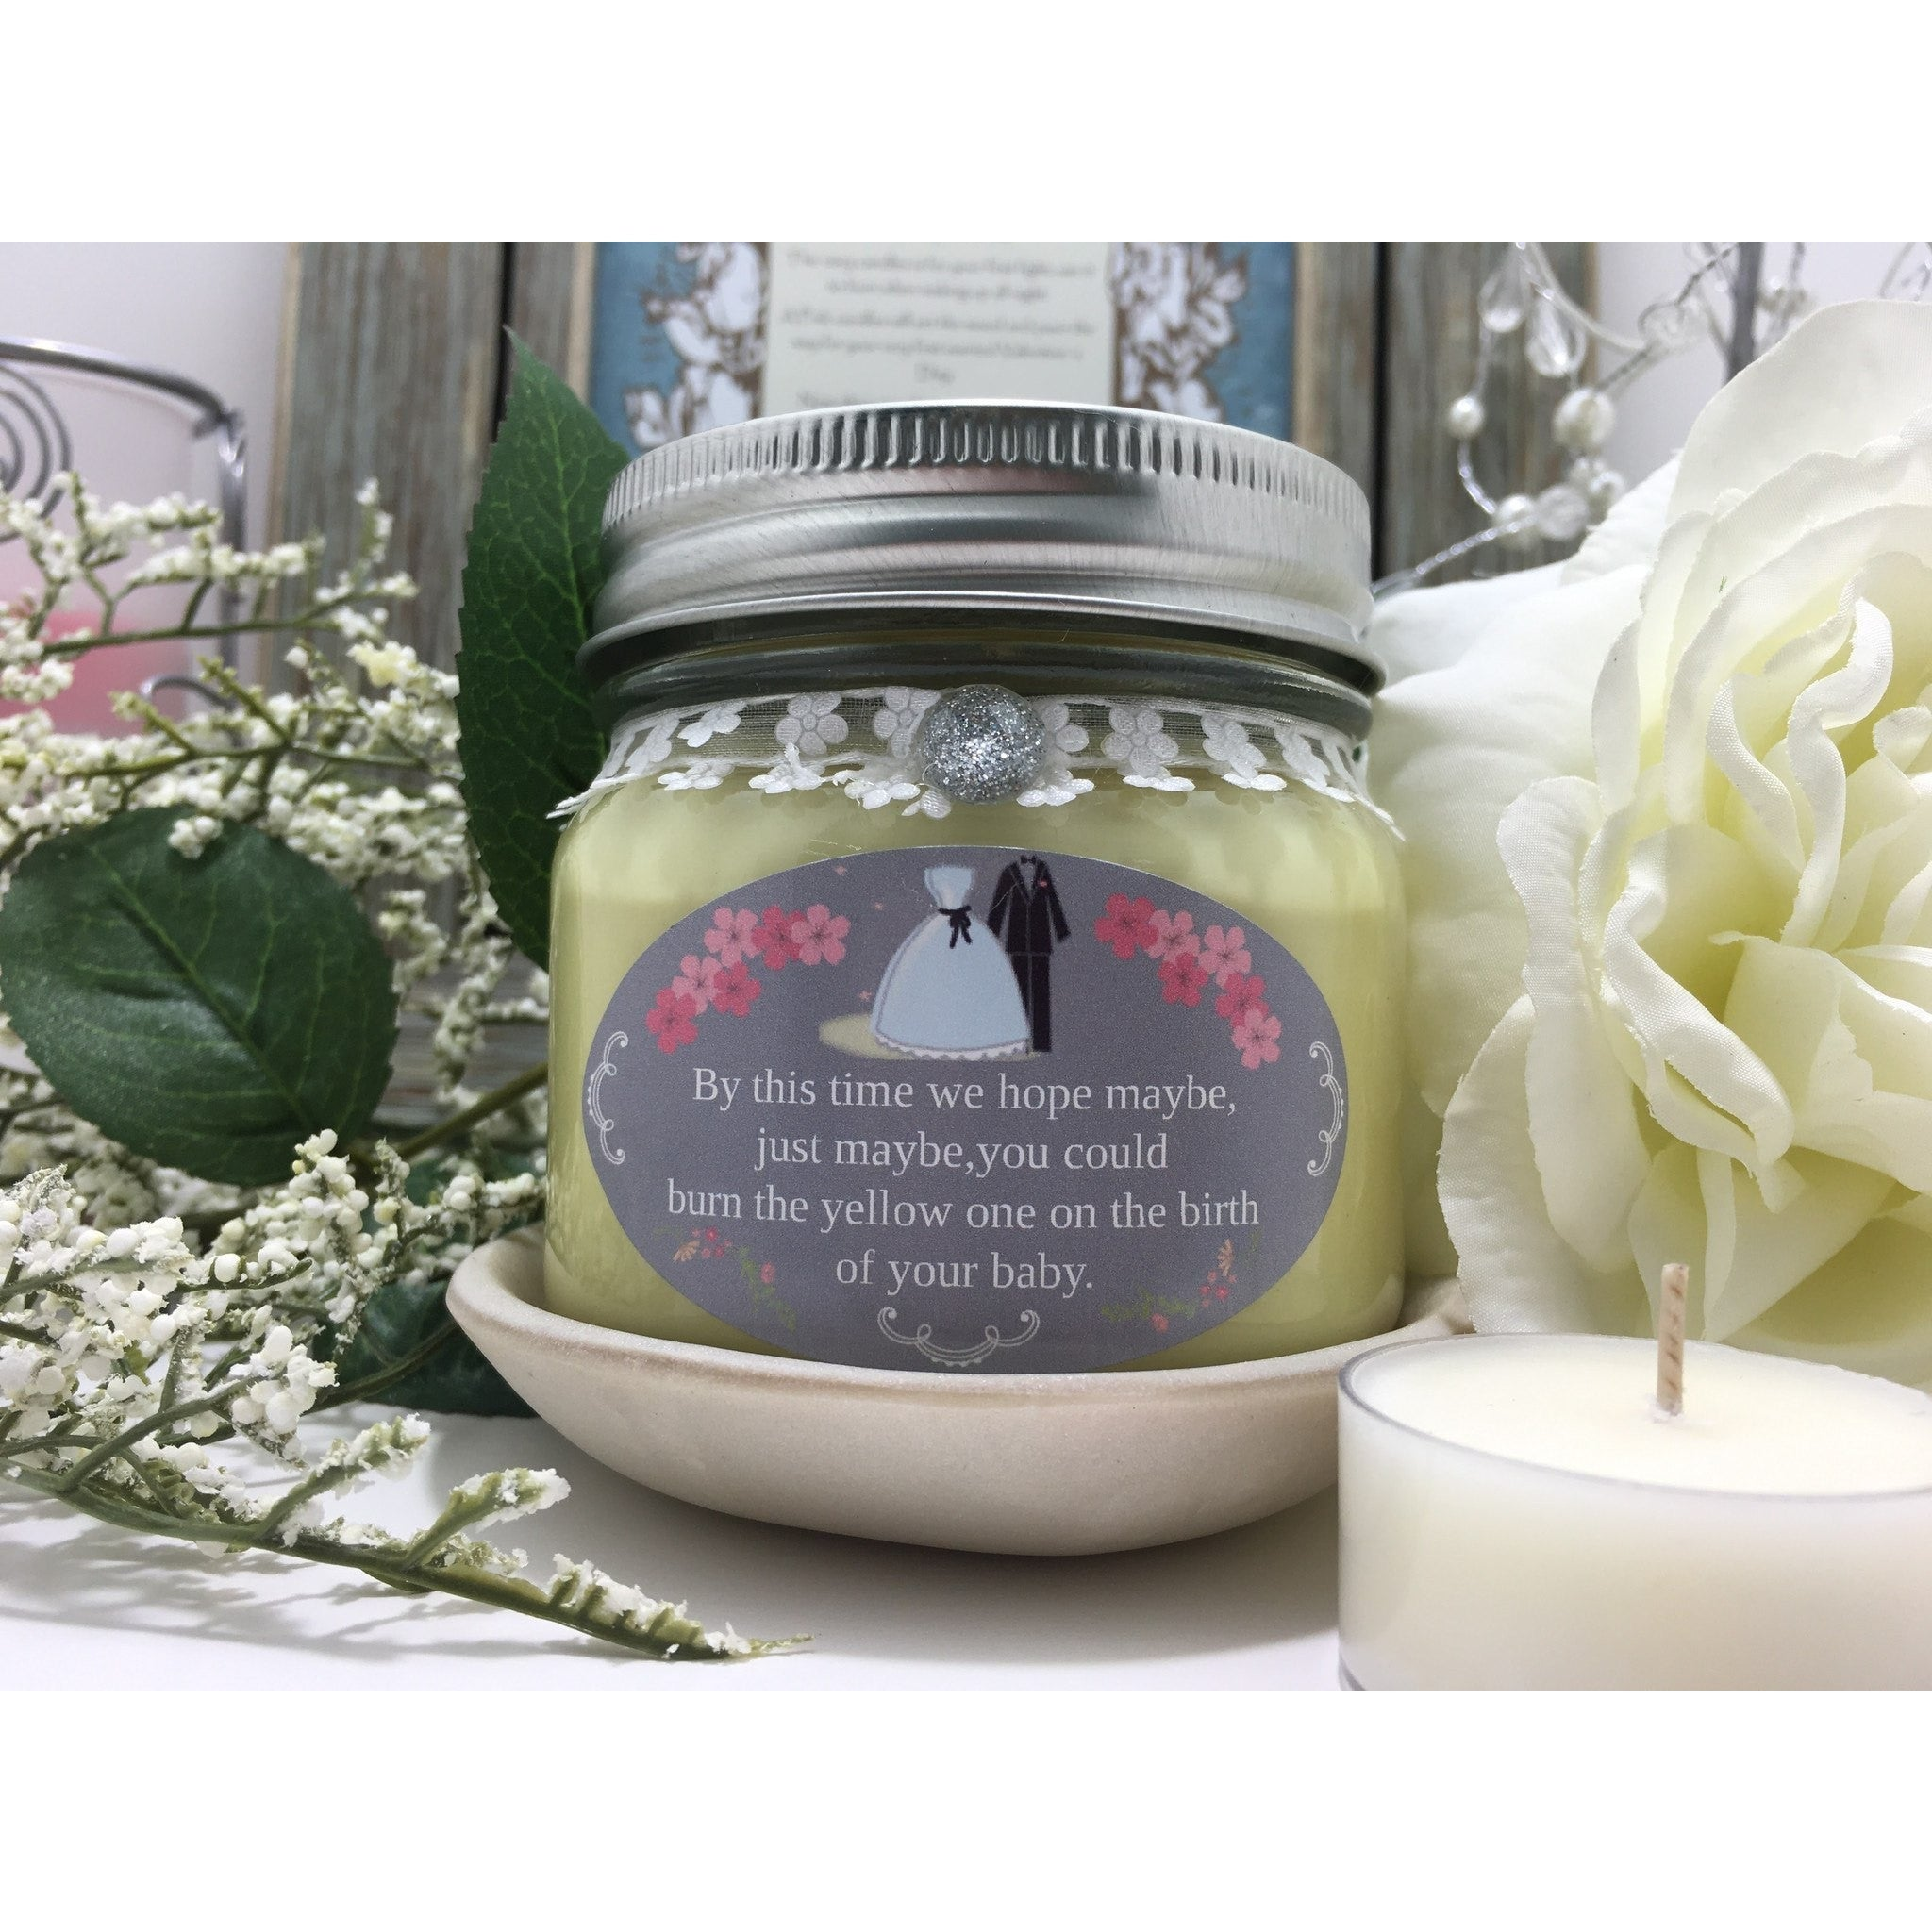 Wedding & Shower Party Natural Hand Poured Soy Candles & Melts -  - Bella-Mia Naturals All Natural Soy Candles & Lip Balms - 21